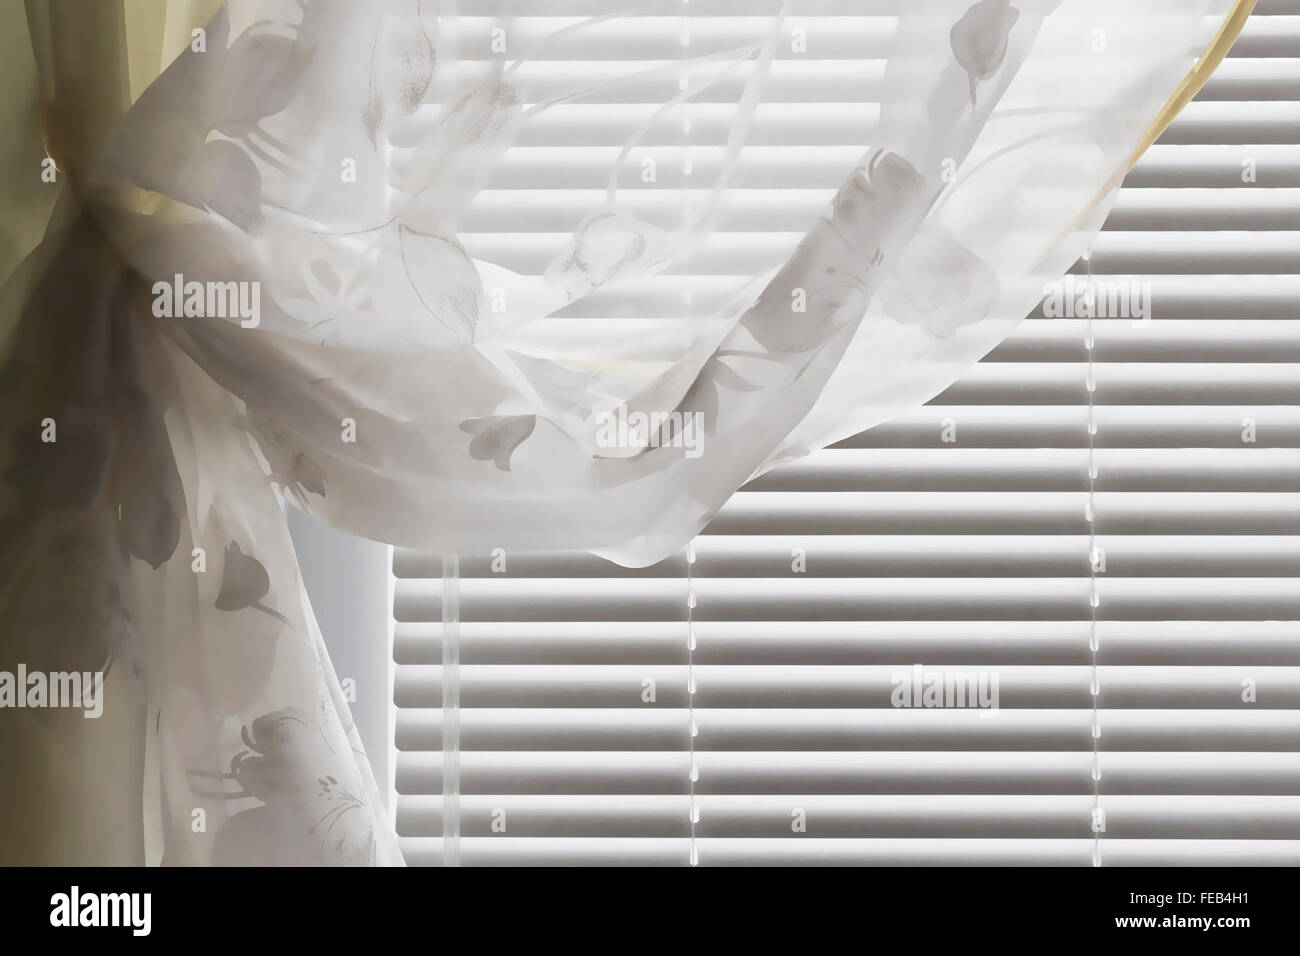 Horizontal blinds curtain - Stock Image